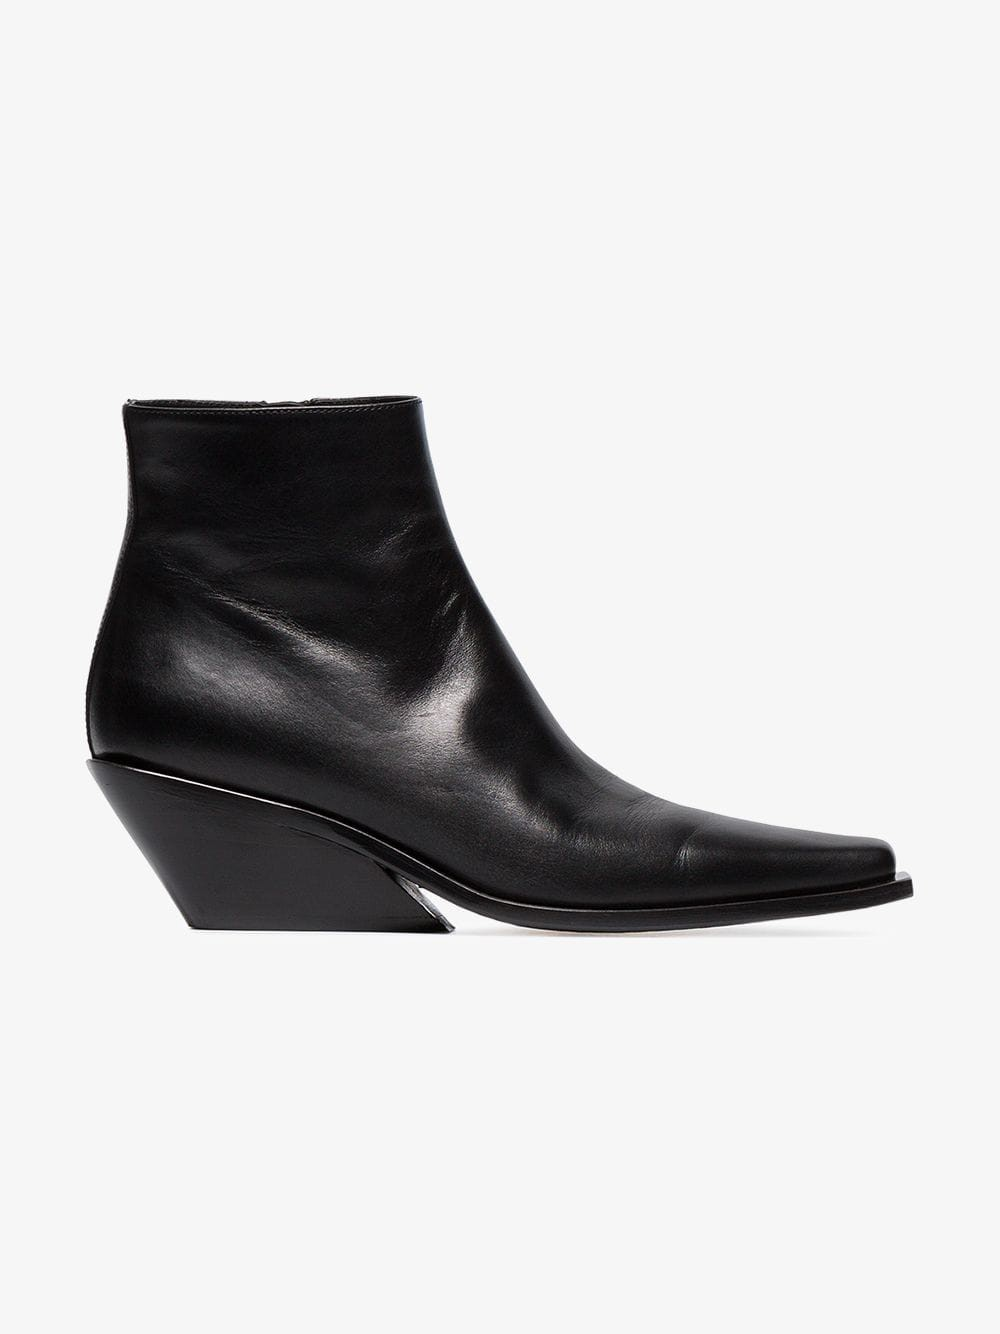 Ann Demeulemeester 50 Leather Ankle Boots in black